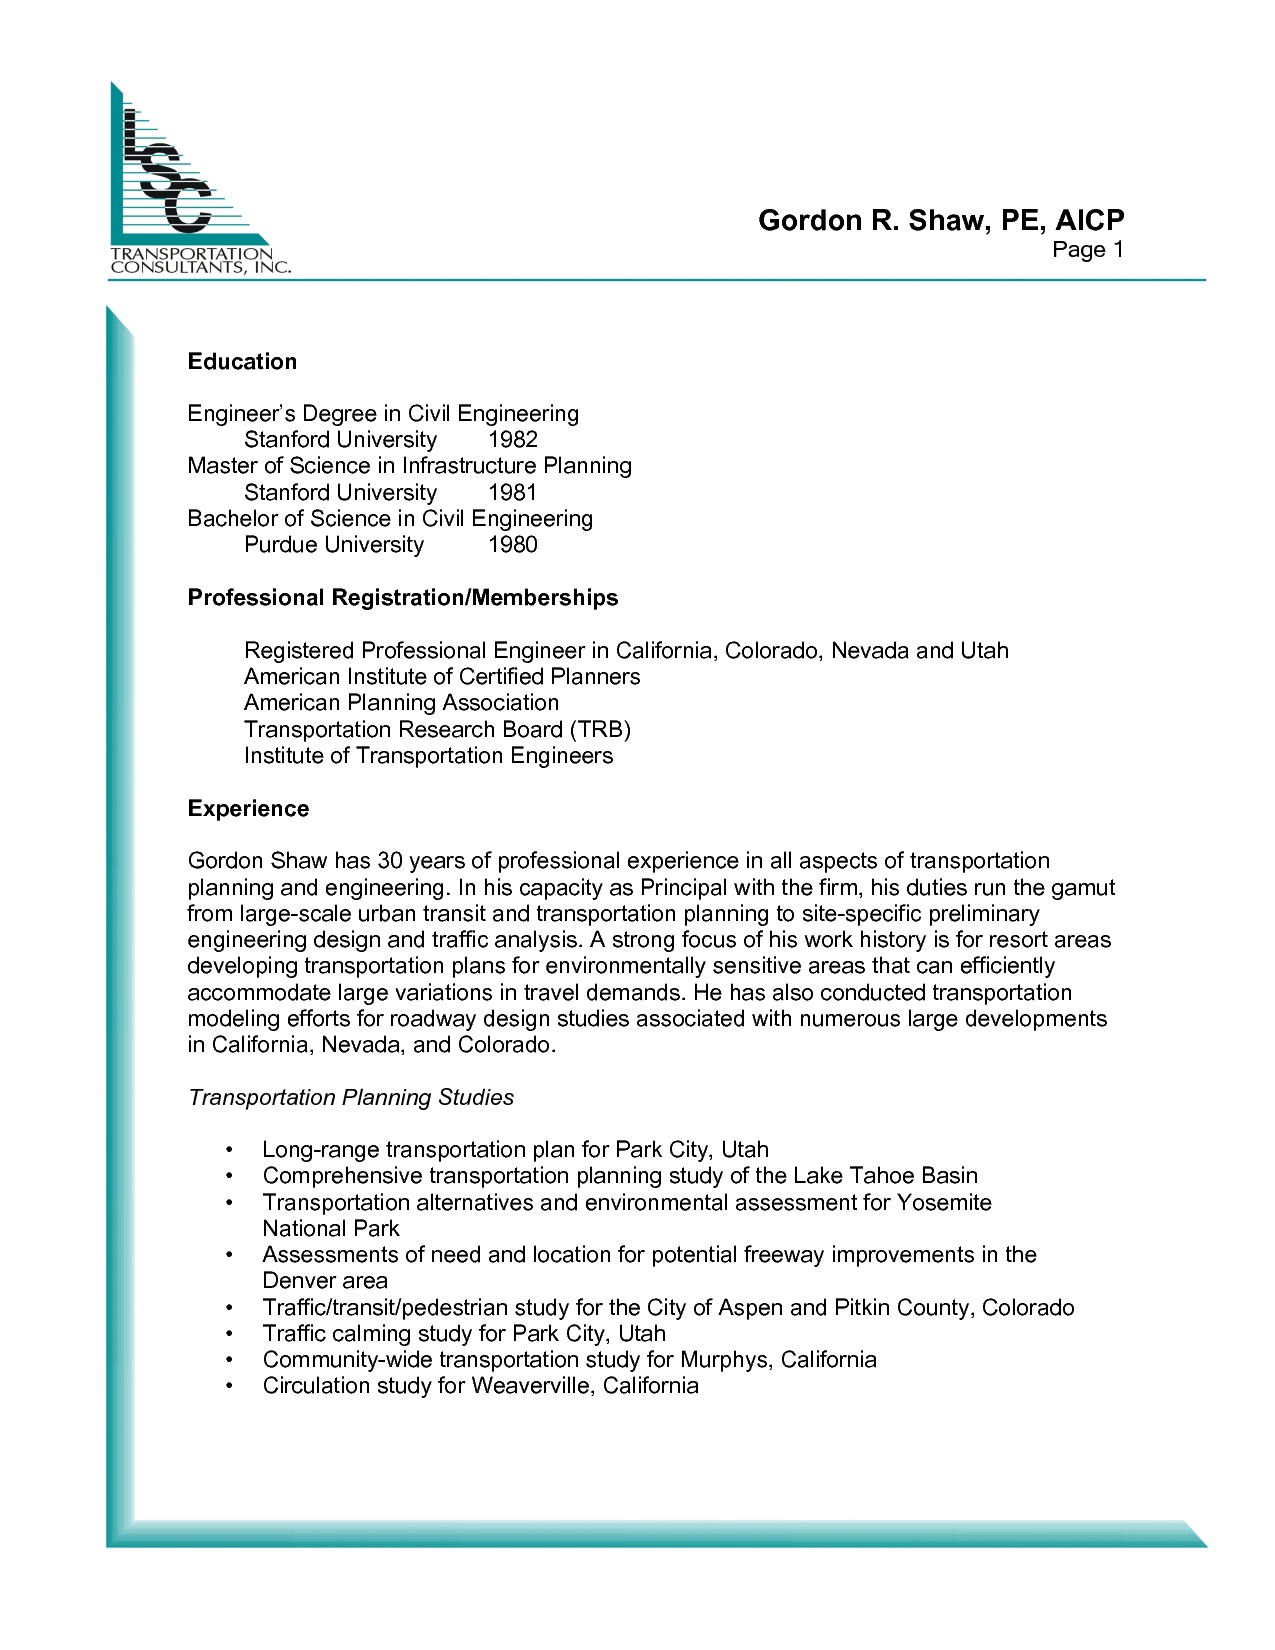 Civil Engineer Job Description Resume   Http://www.resumecareer.info/civil  Engineer Job Description Resume 27/